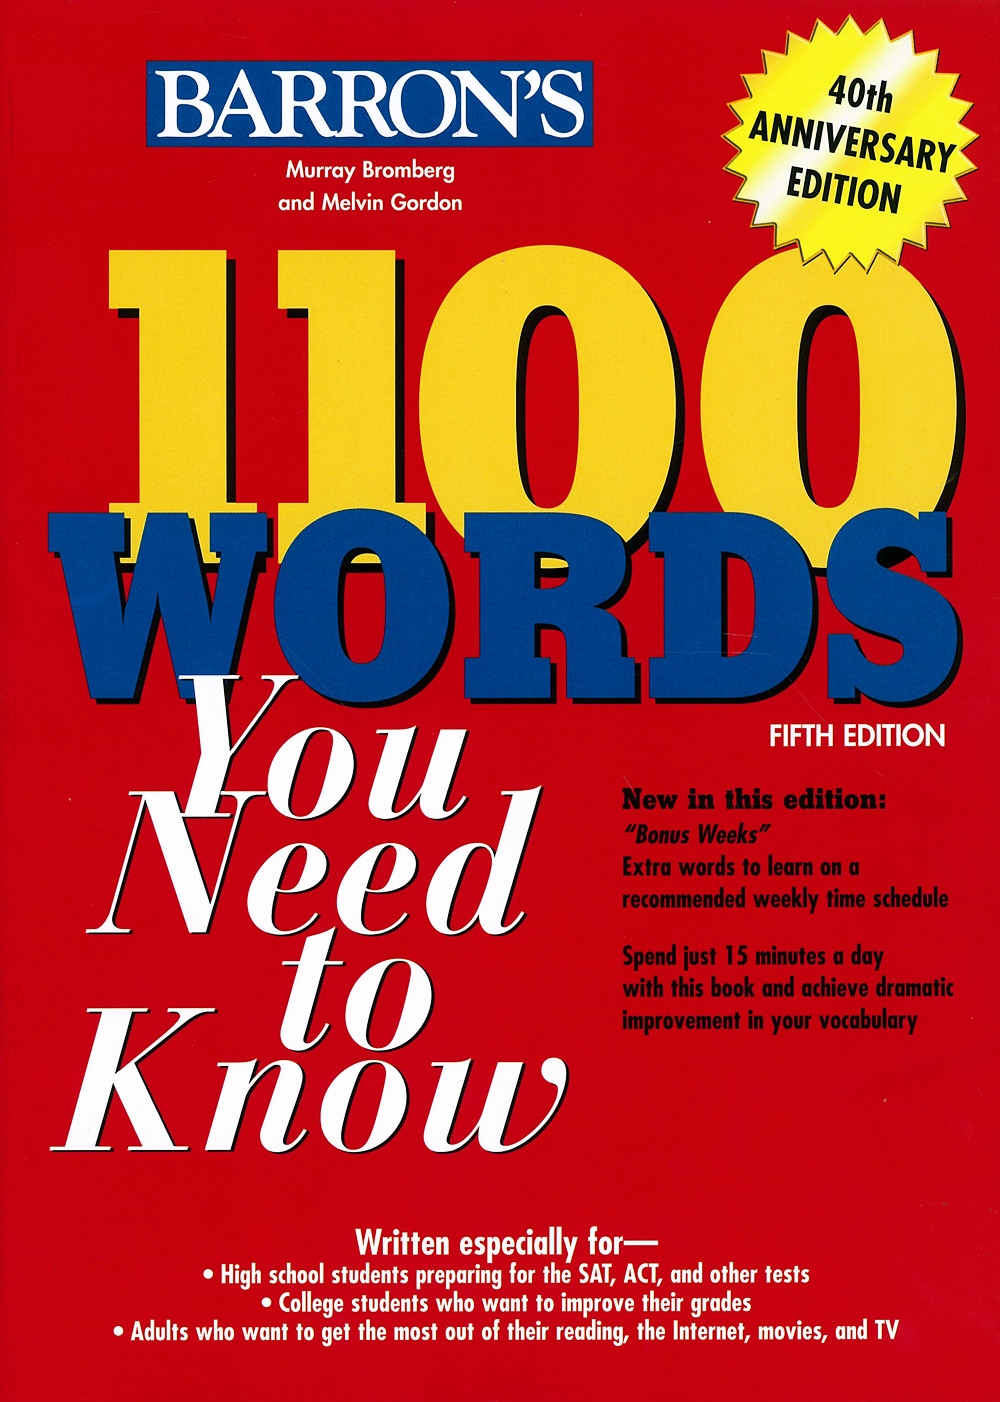 دانلود کتاب Barrons 1100 Words You Need to Know 5th